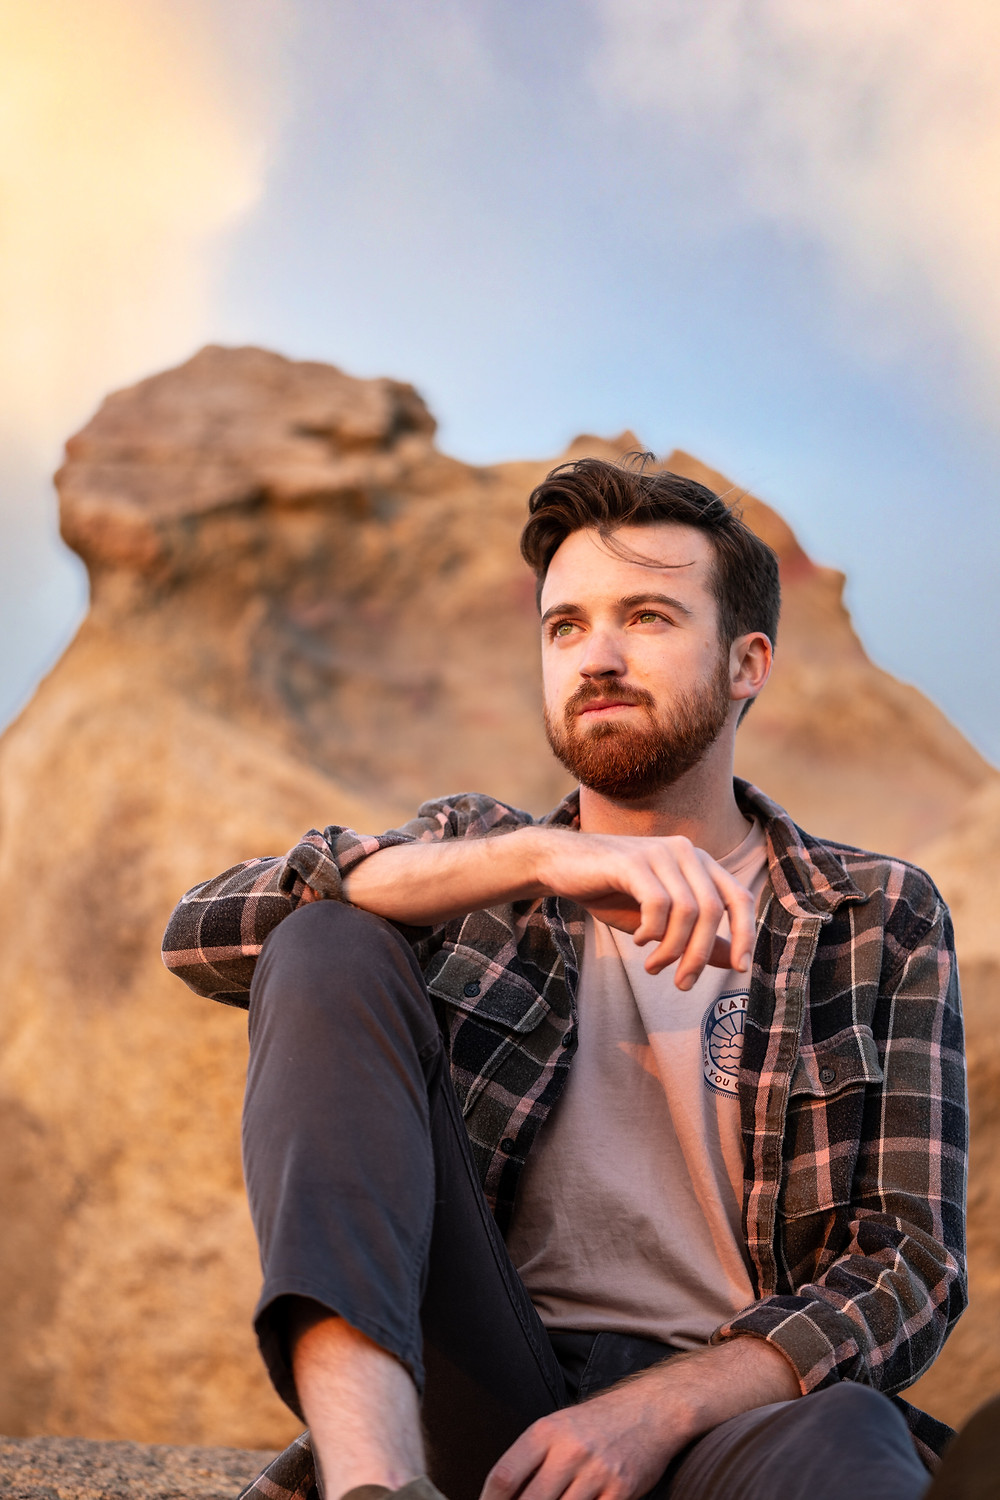 Young man sitting on a rock made of sandstone, gazing into the horizon during golden hour.